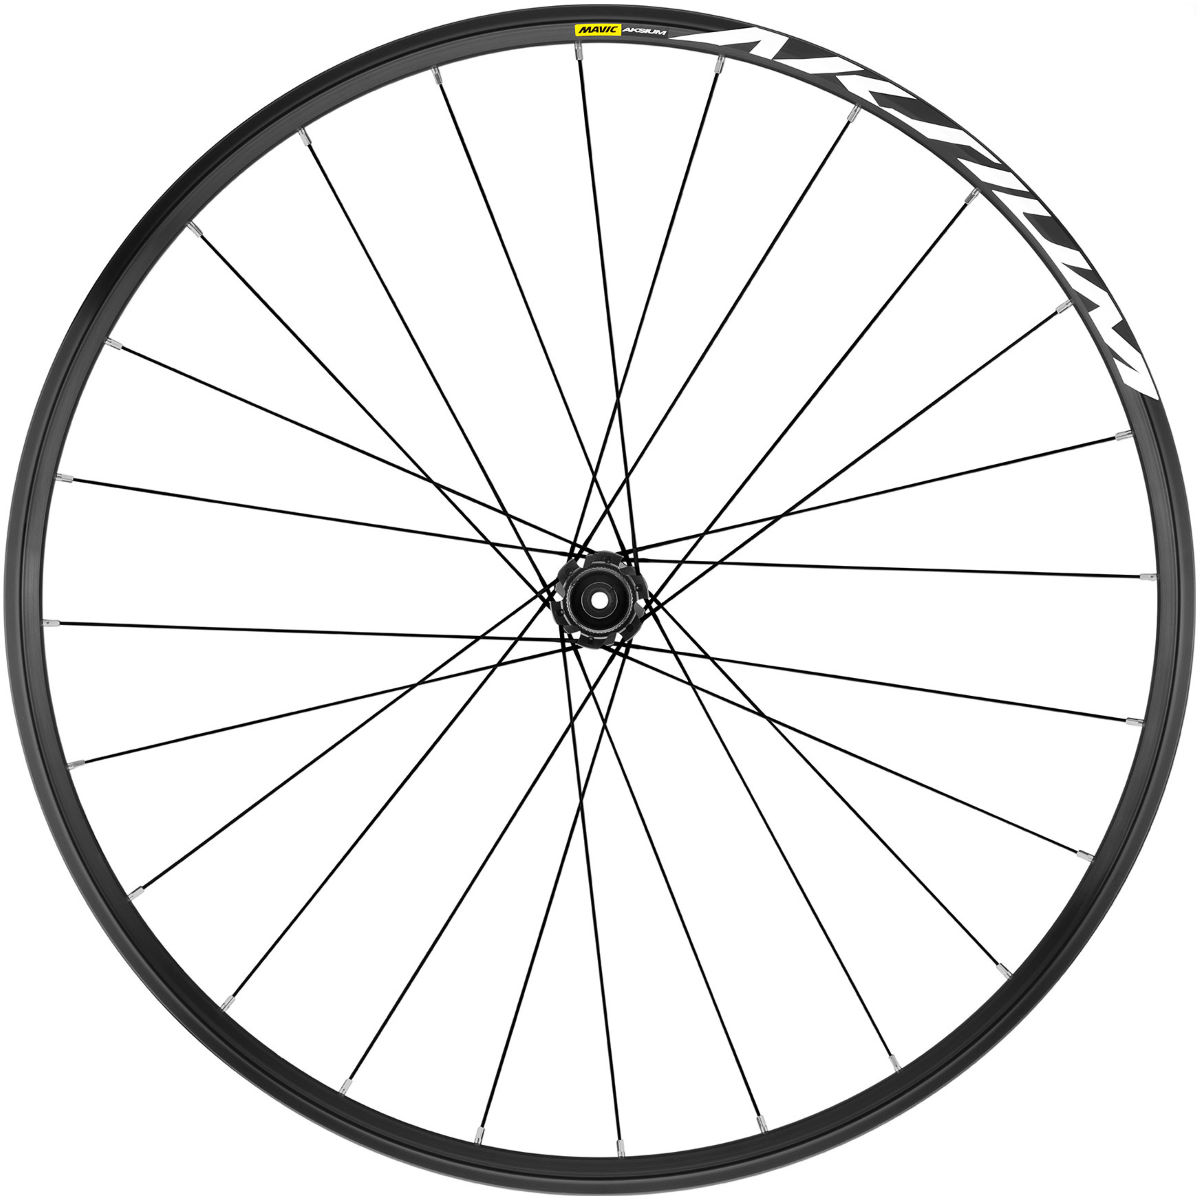 Mavic Askium 17 Disc Front Wheel - Front wheels